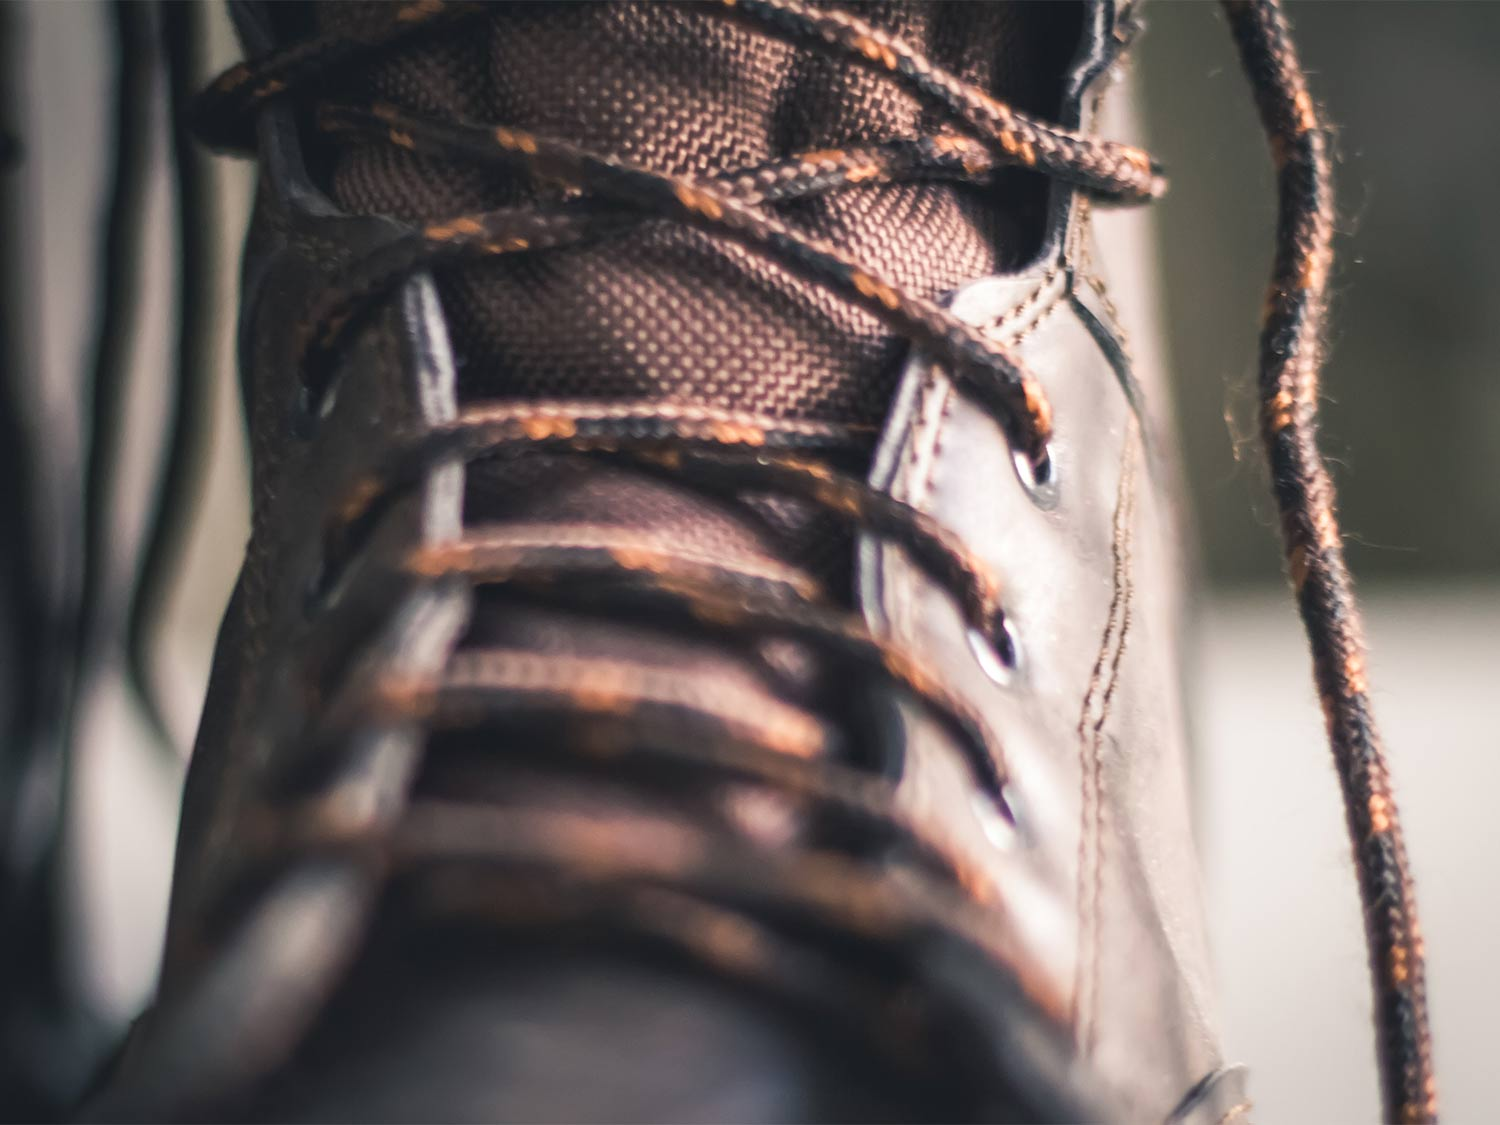 Closeup details of leather boots and laces.